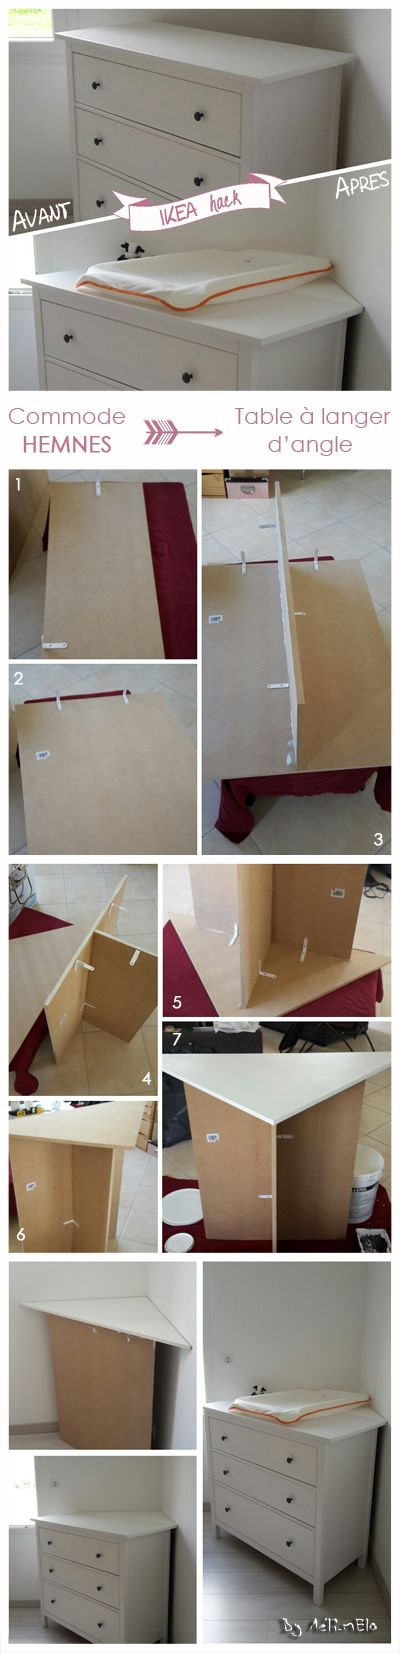 The 25 best ikea changing table ideas on pinterest organizing baby stuff - Commode a langer d angle ...